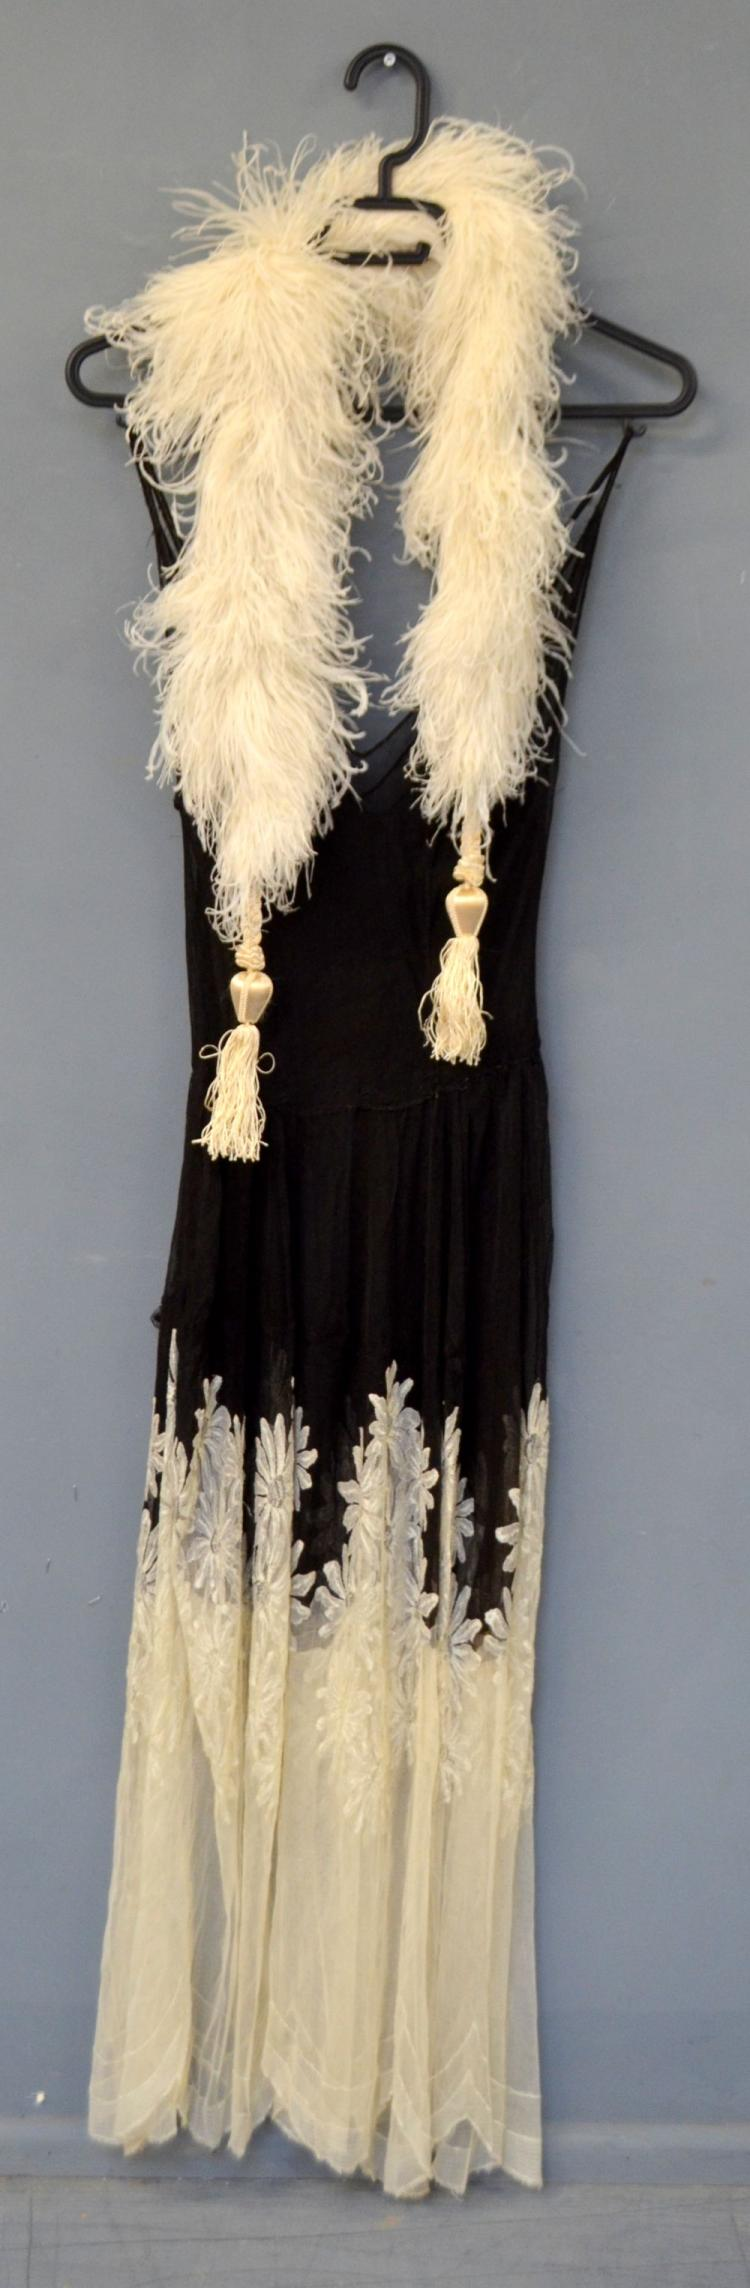 1930's dress of cream and black lace with daisy de